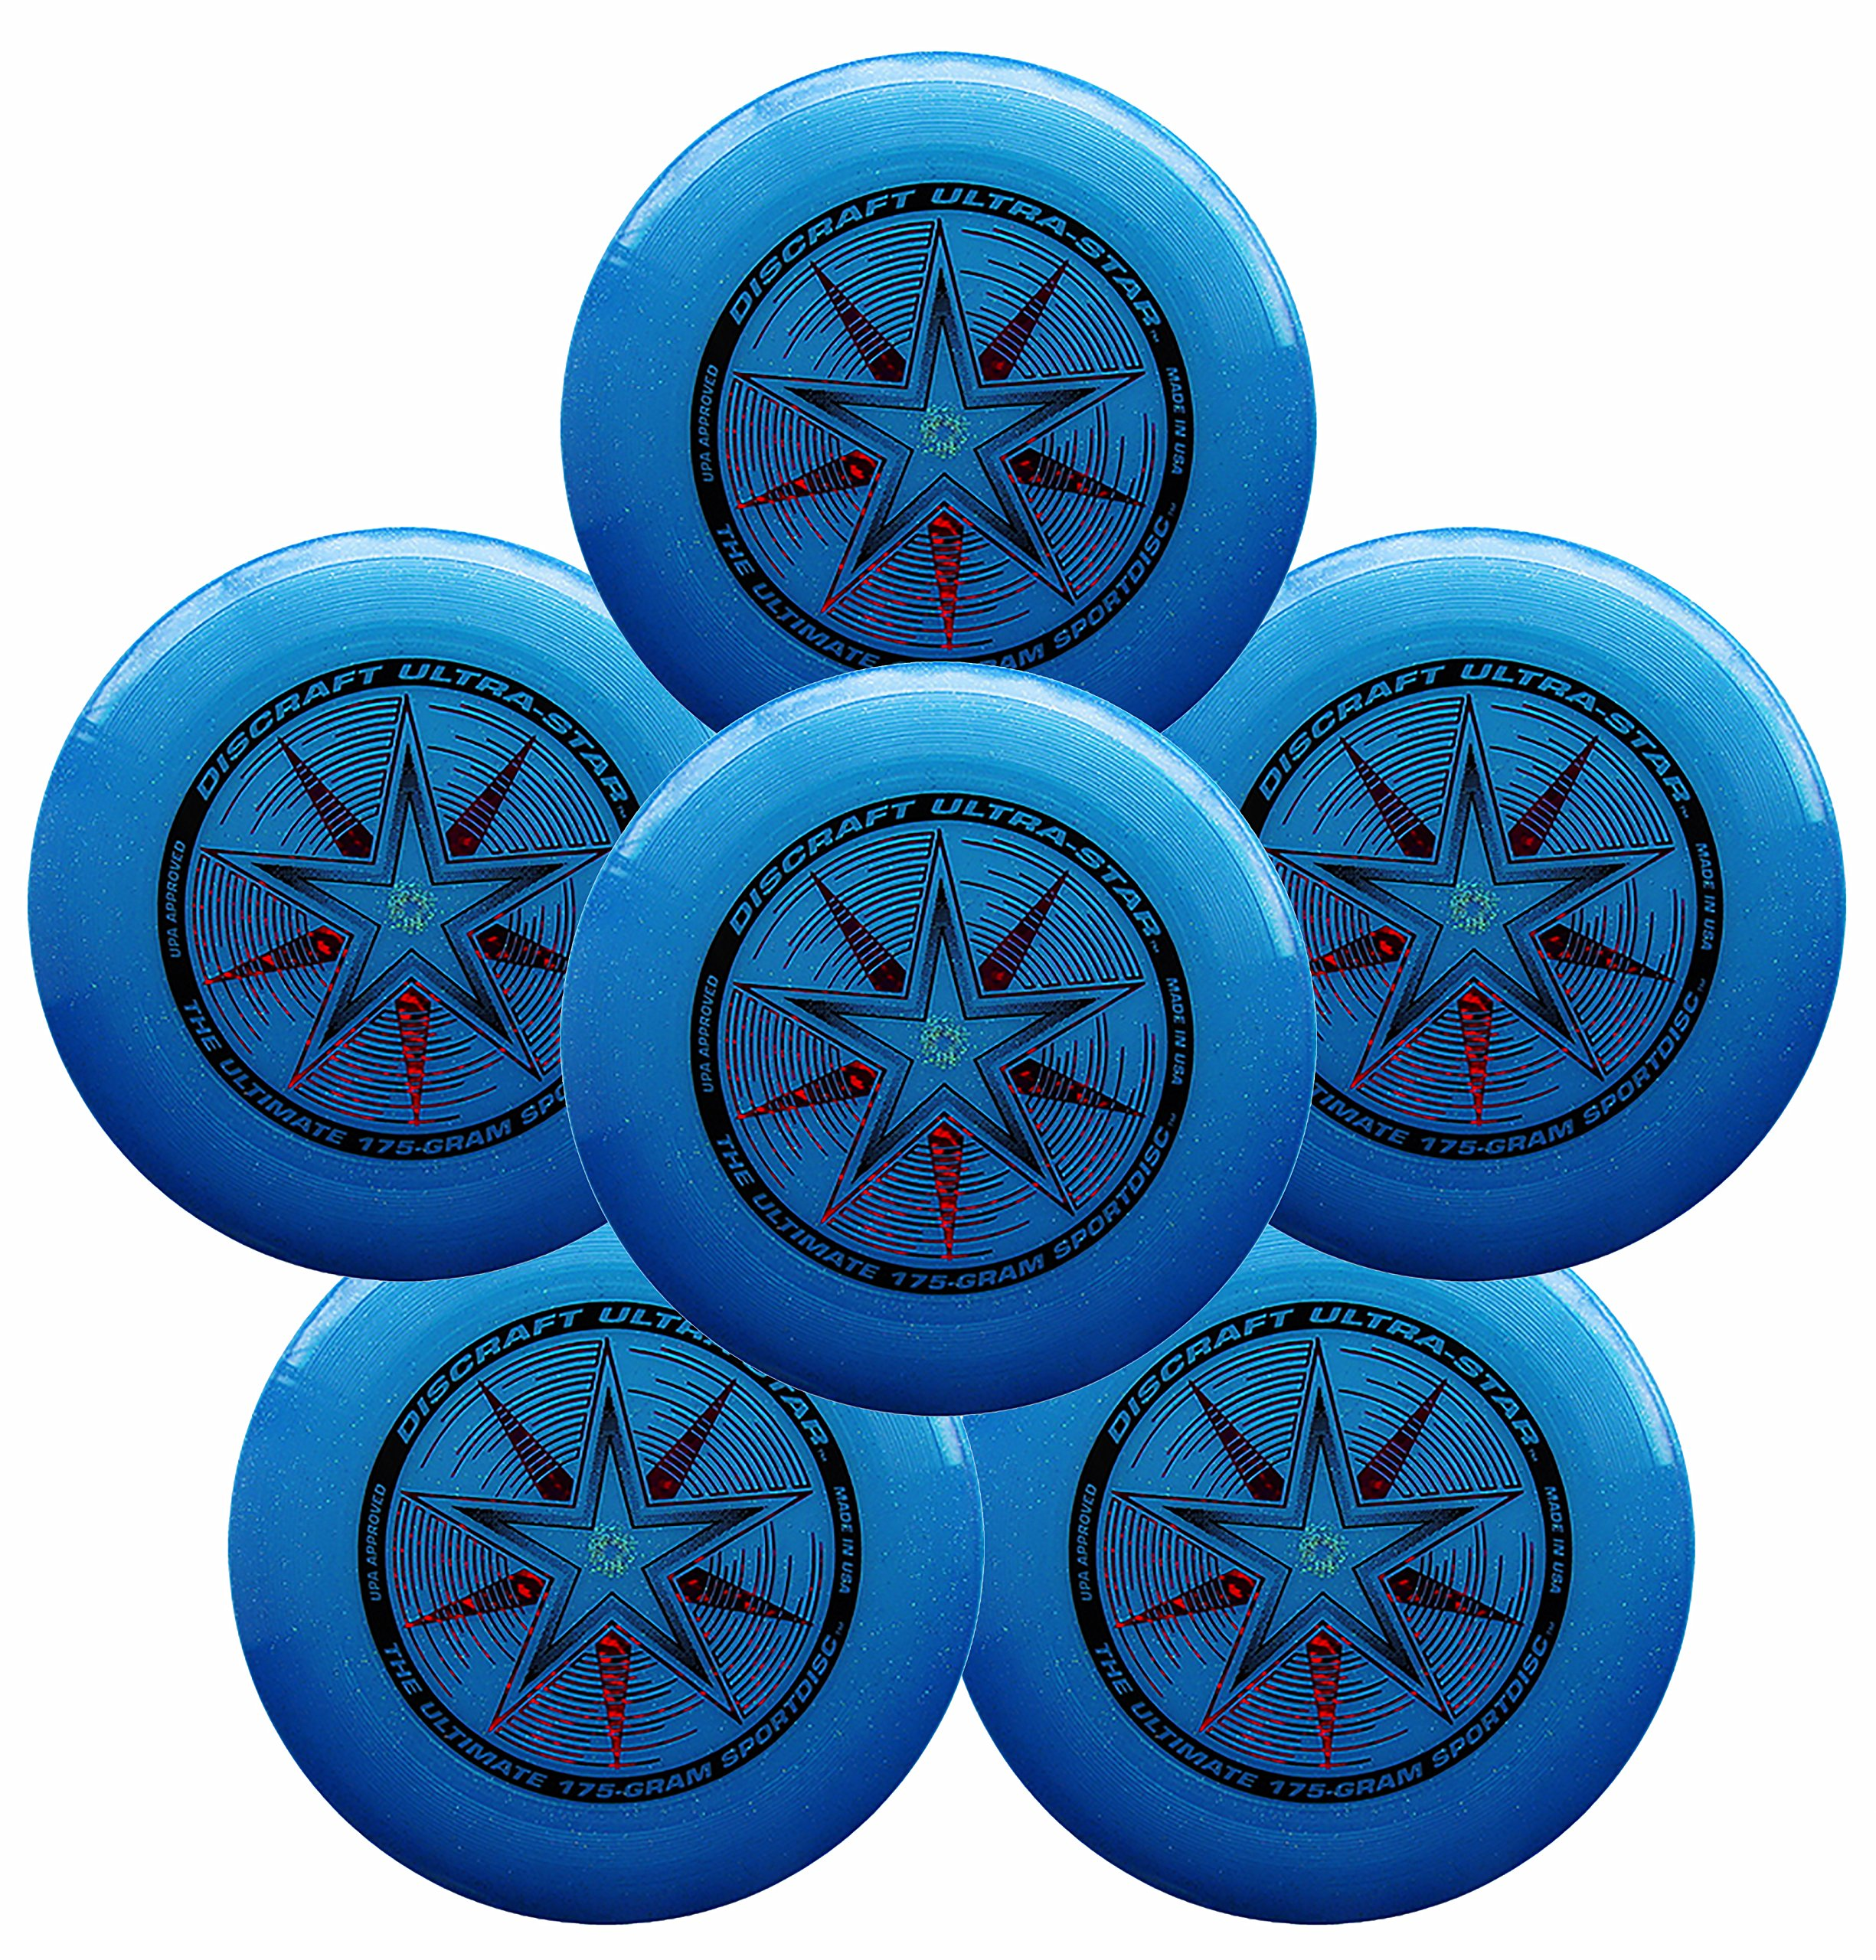 Discraft Ultra-Star 175g Ultimate Frisbee Sport Disc (6 Pack) Sparkle Blue by Discraft